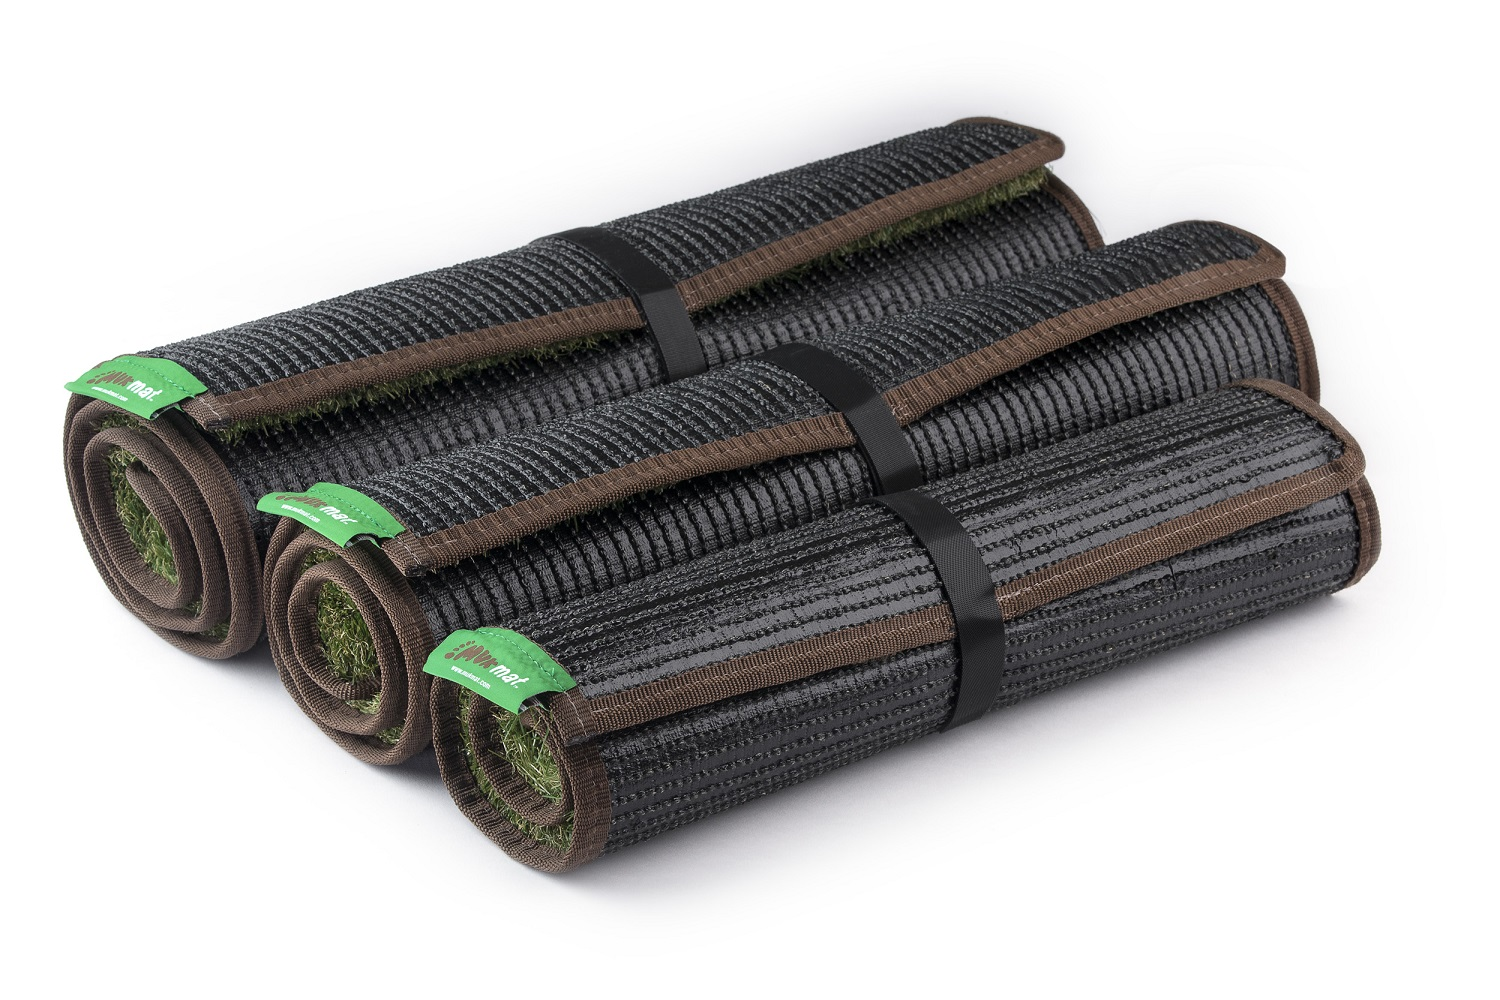 Muk Mat rolls up for storage